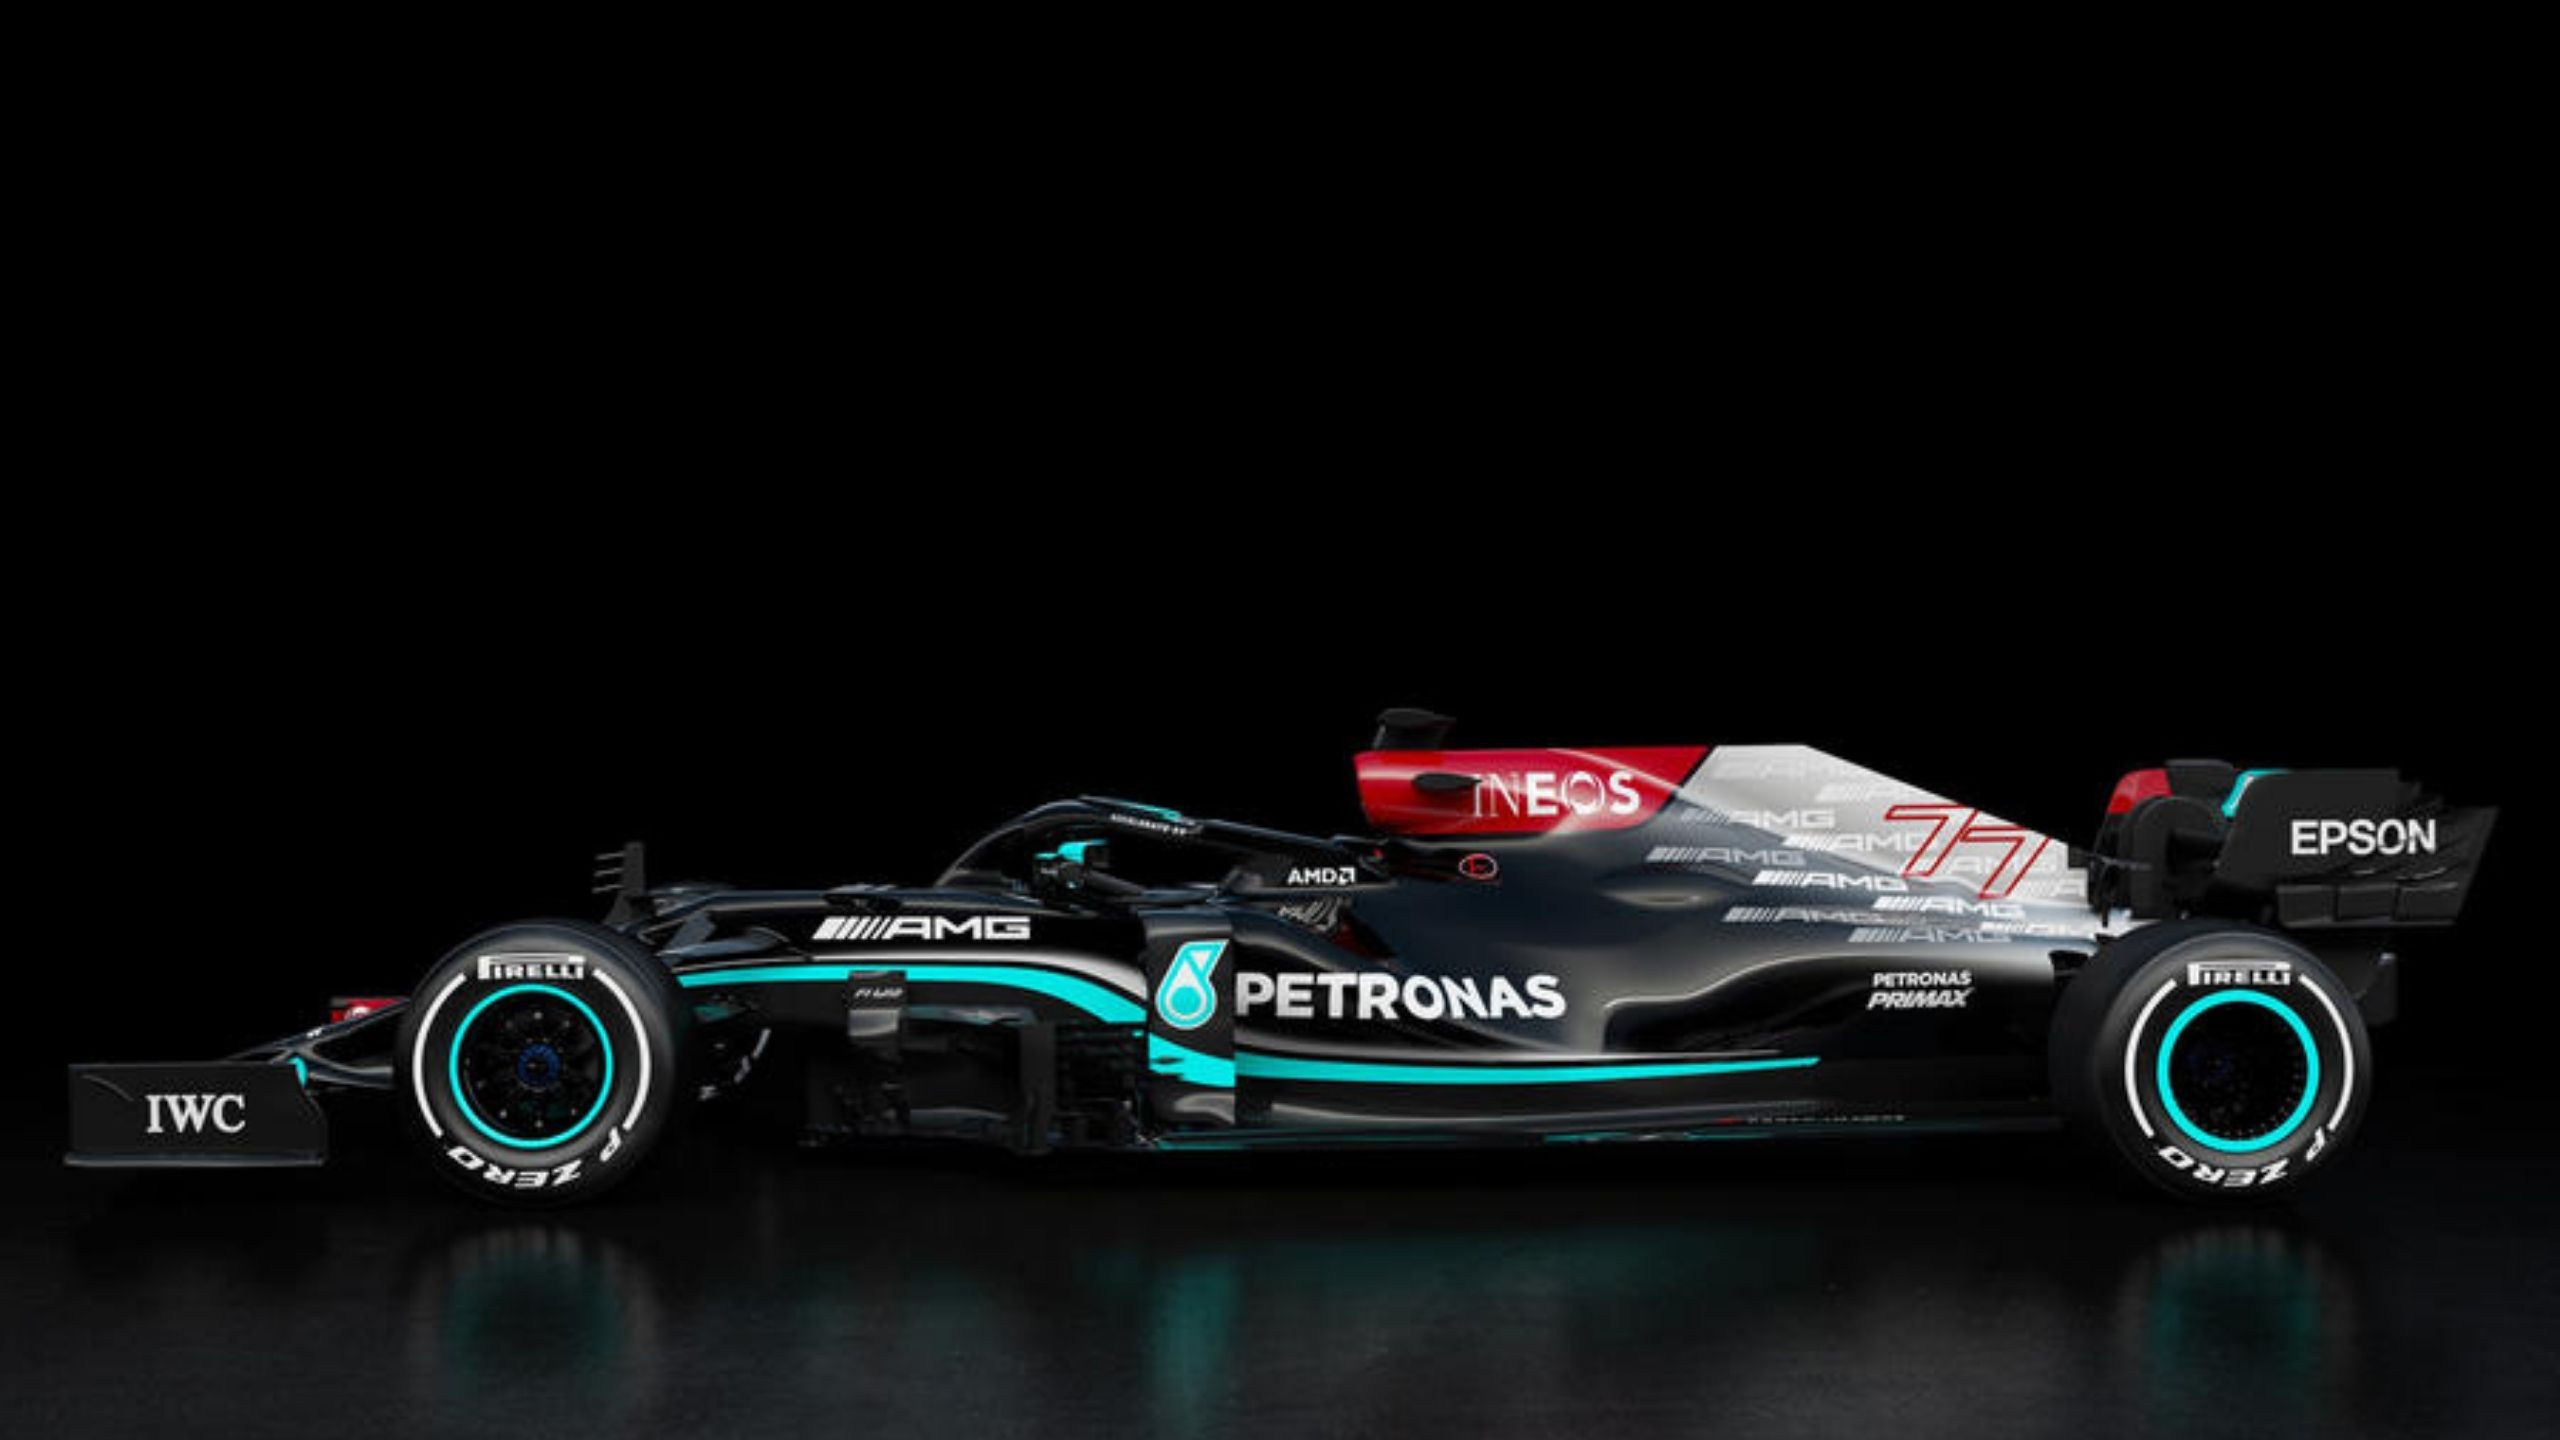 """""""Still not fully comfortable"""" - Valtteri Bottas unimpressed with Mercedes W12 after pre-season testing in Bahrain"""